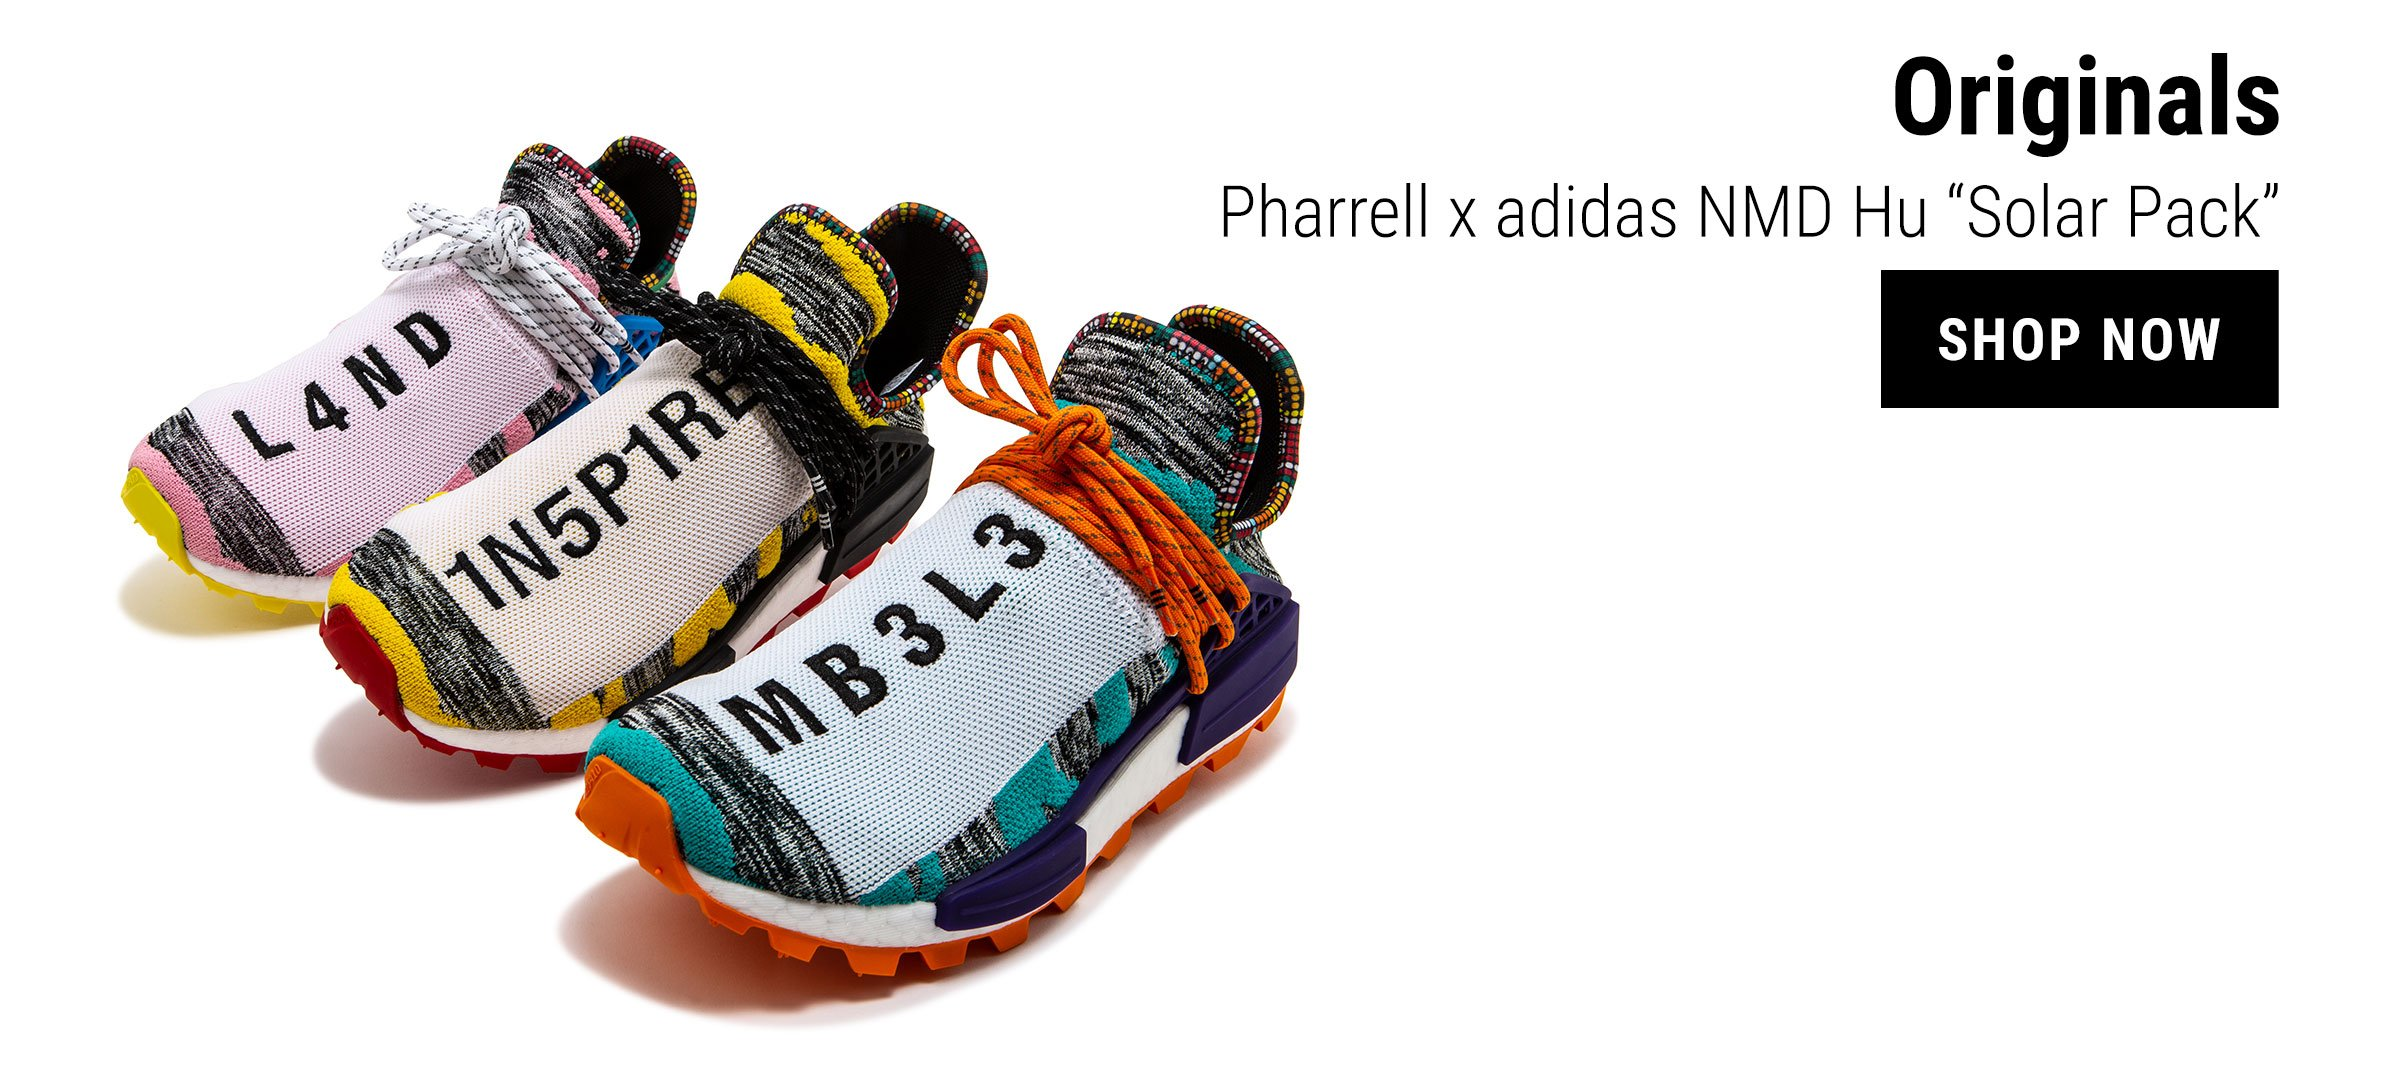 d71413fda4dbe Change the pace. Shop our latest adidas styles feat. NMD Hu Solar ...